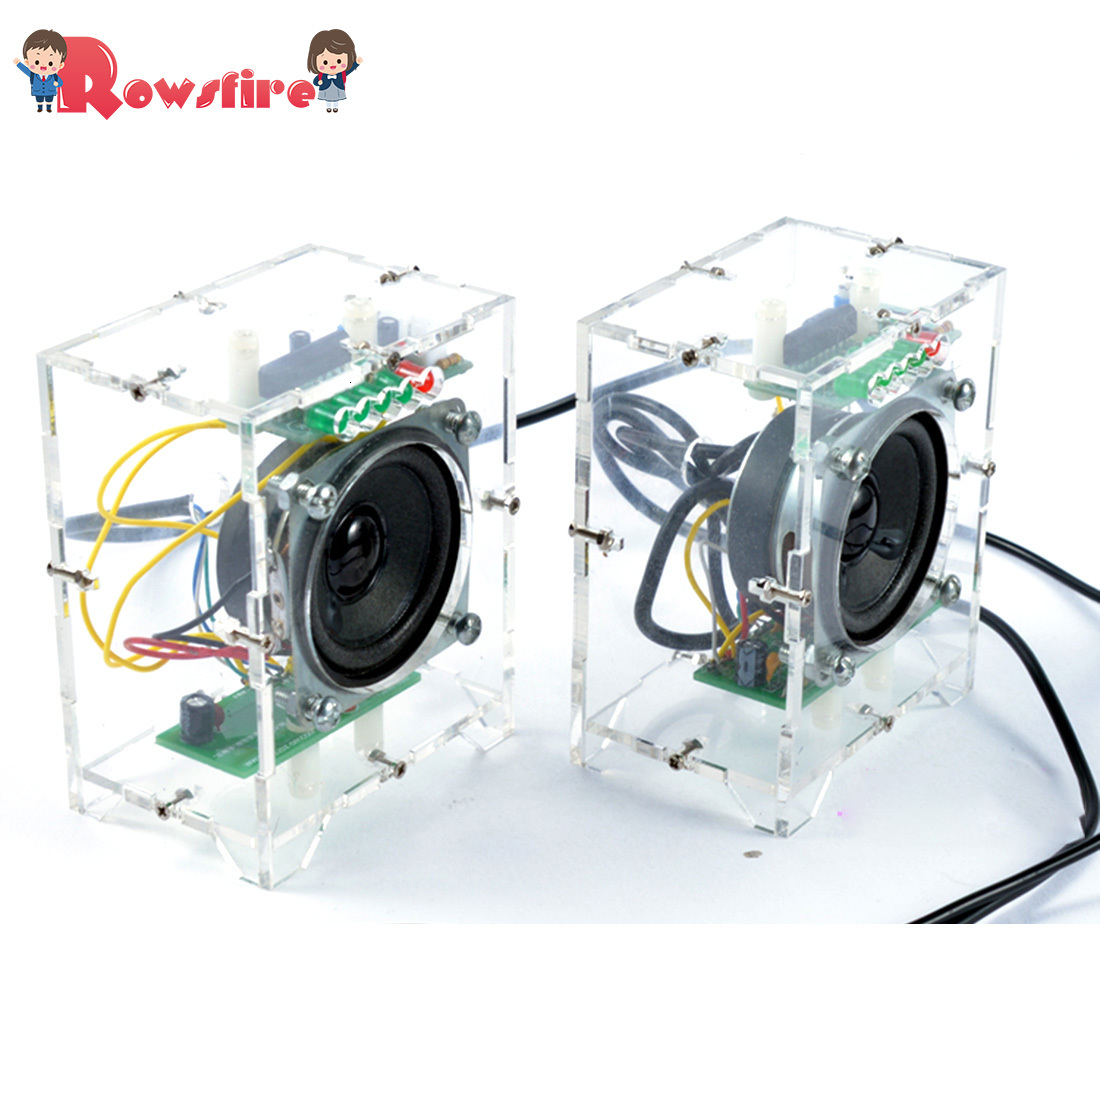 2Pcs DIY Mini Speaker Kit MP3 Small Speaker Sound Amplifier With LED Music Spectrum